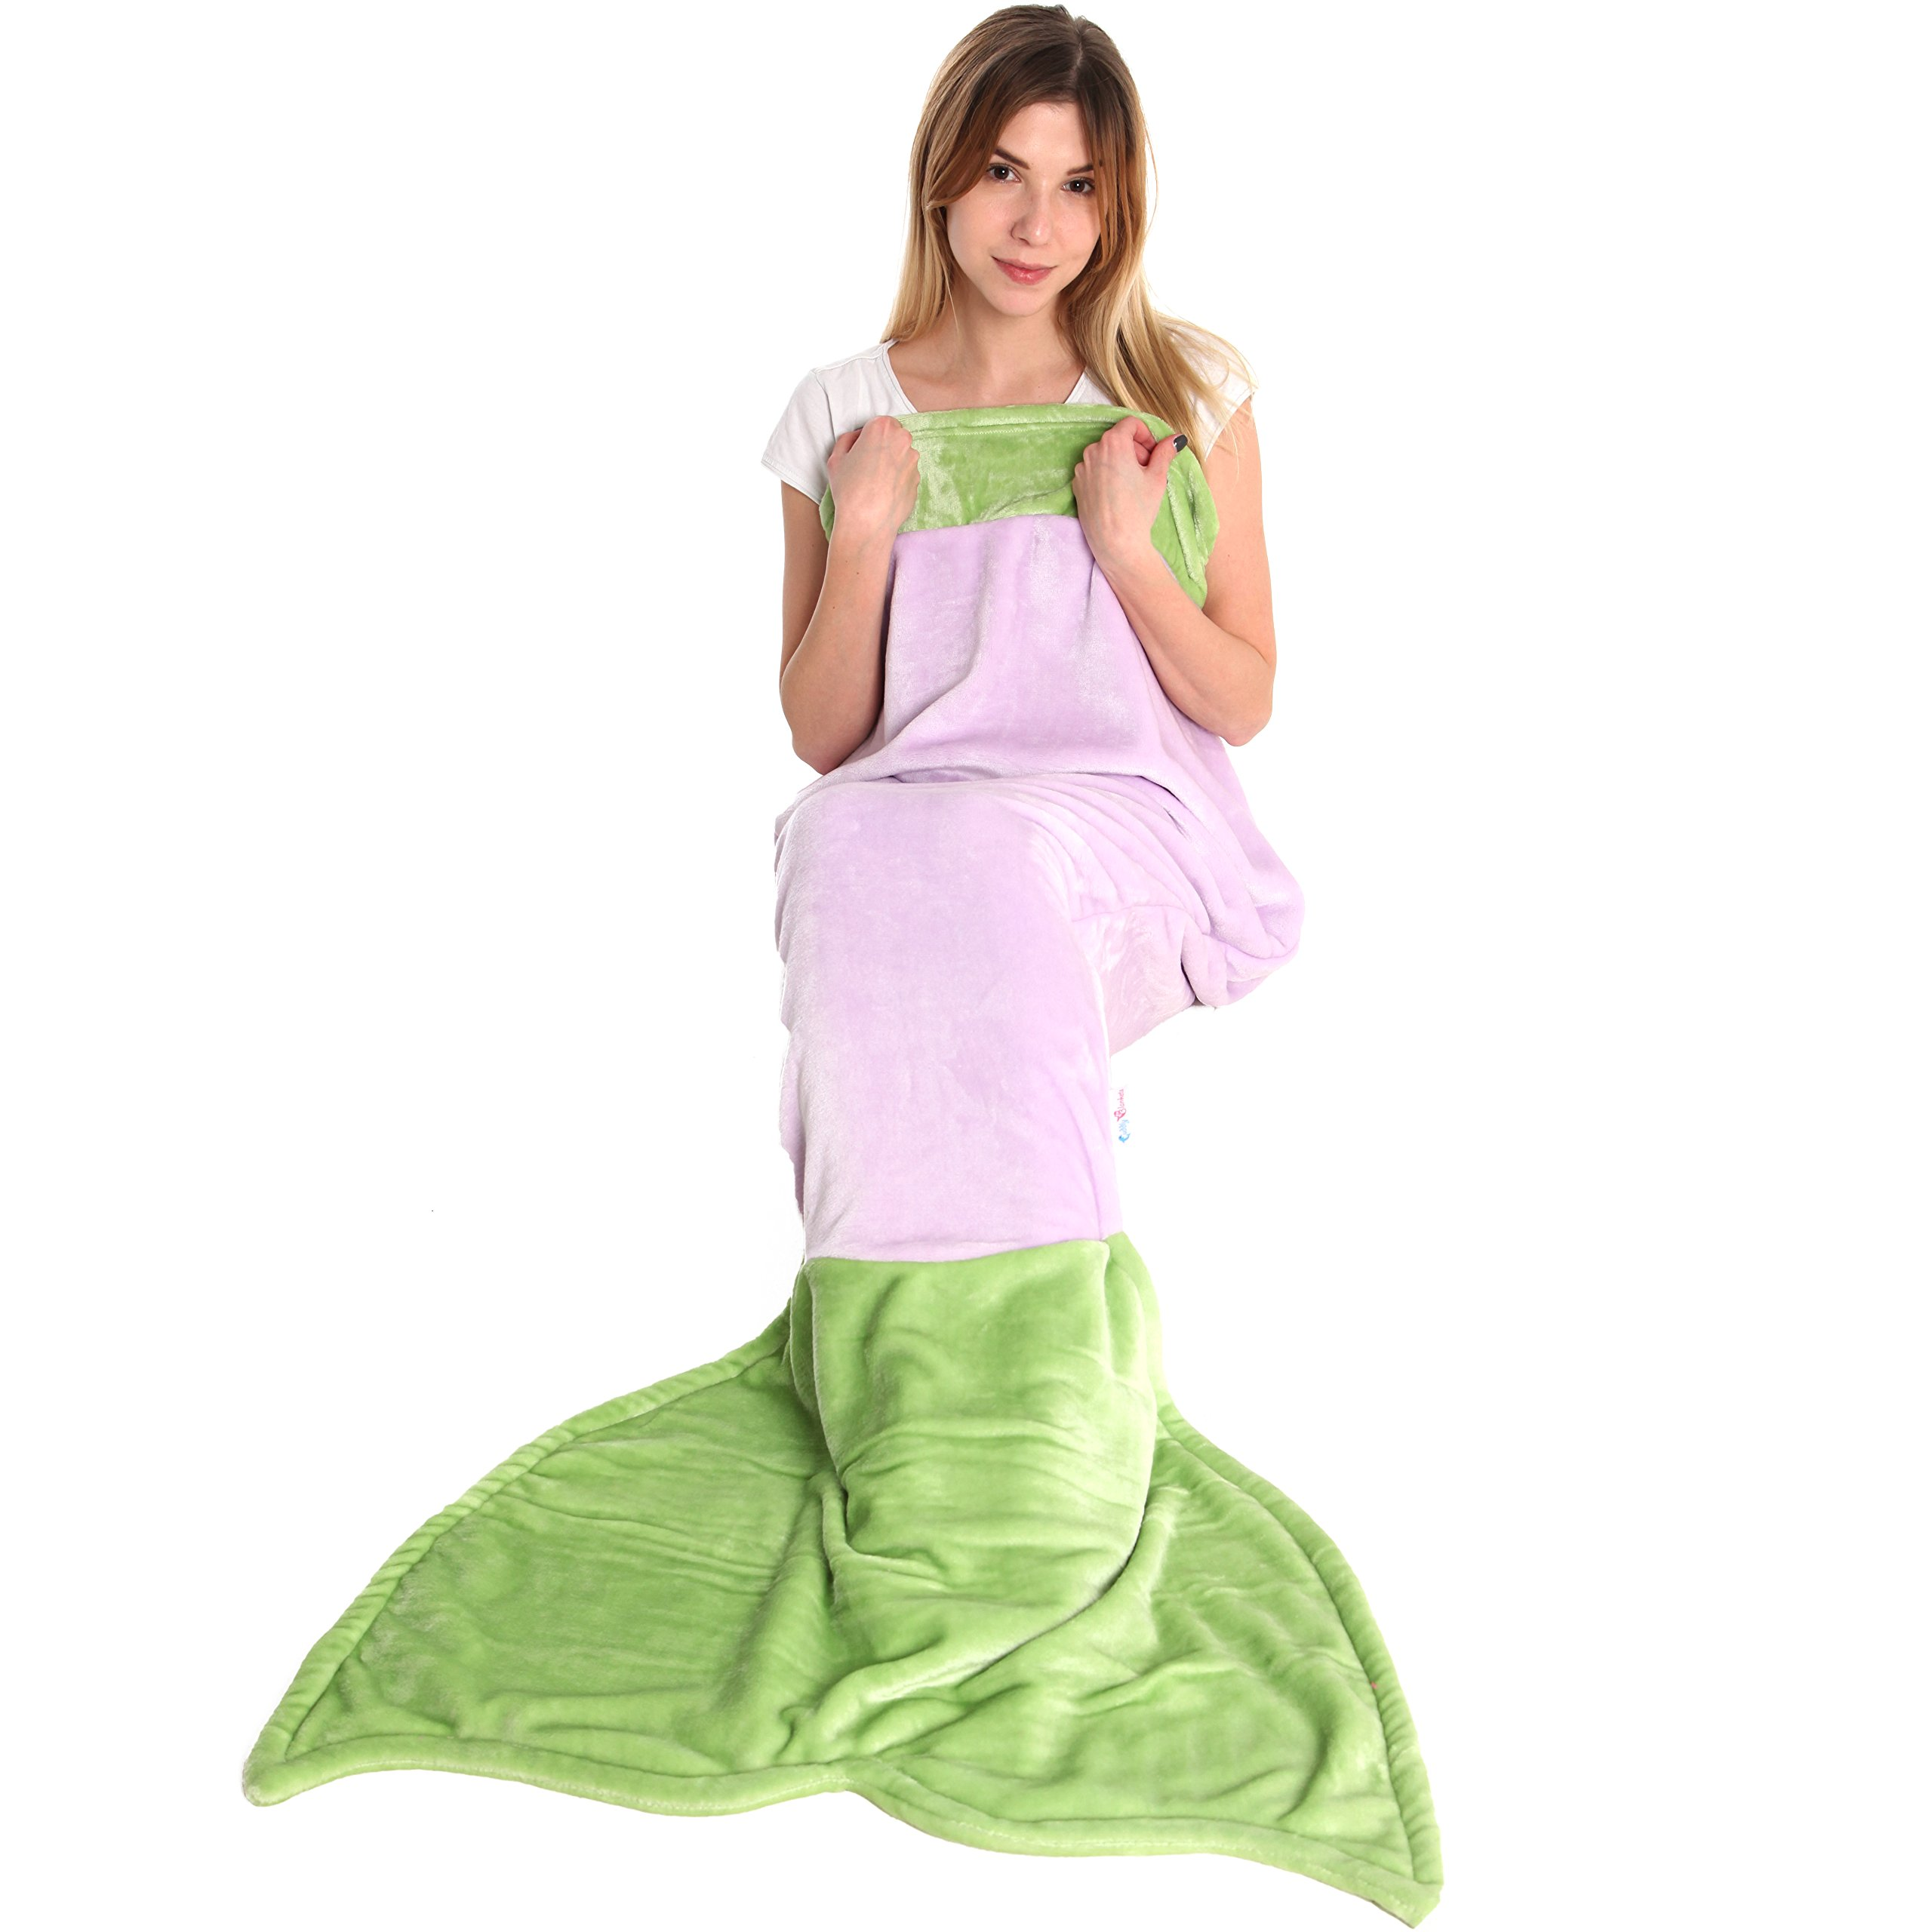 Cuddly Blankets Mermaid Tail Blanket for Adult Women - Super Soft & Warm Minky Fleece Fabric Blanket By Great Birthday and Last Minute Gift for Big Girls, Large Size